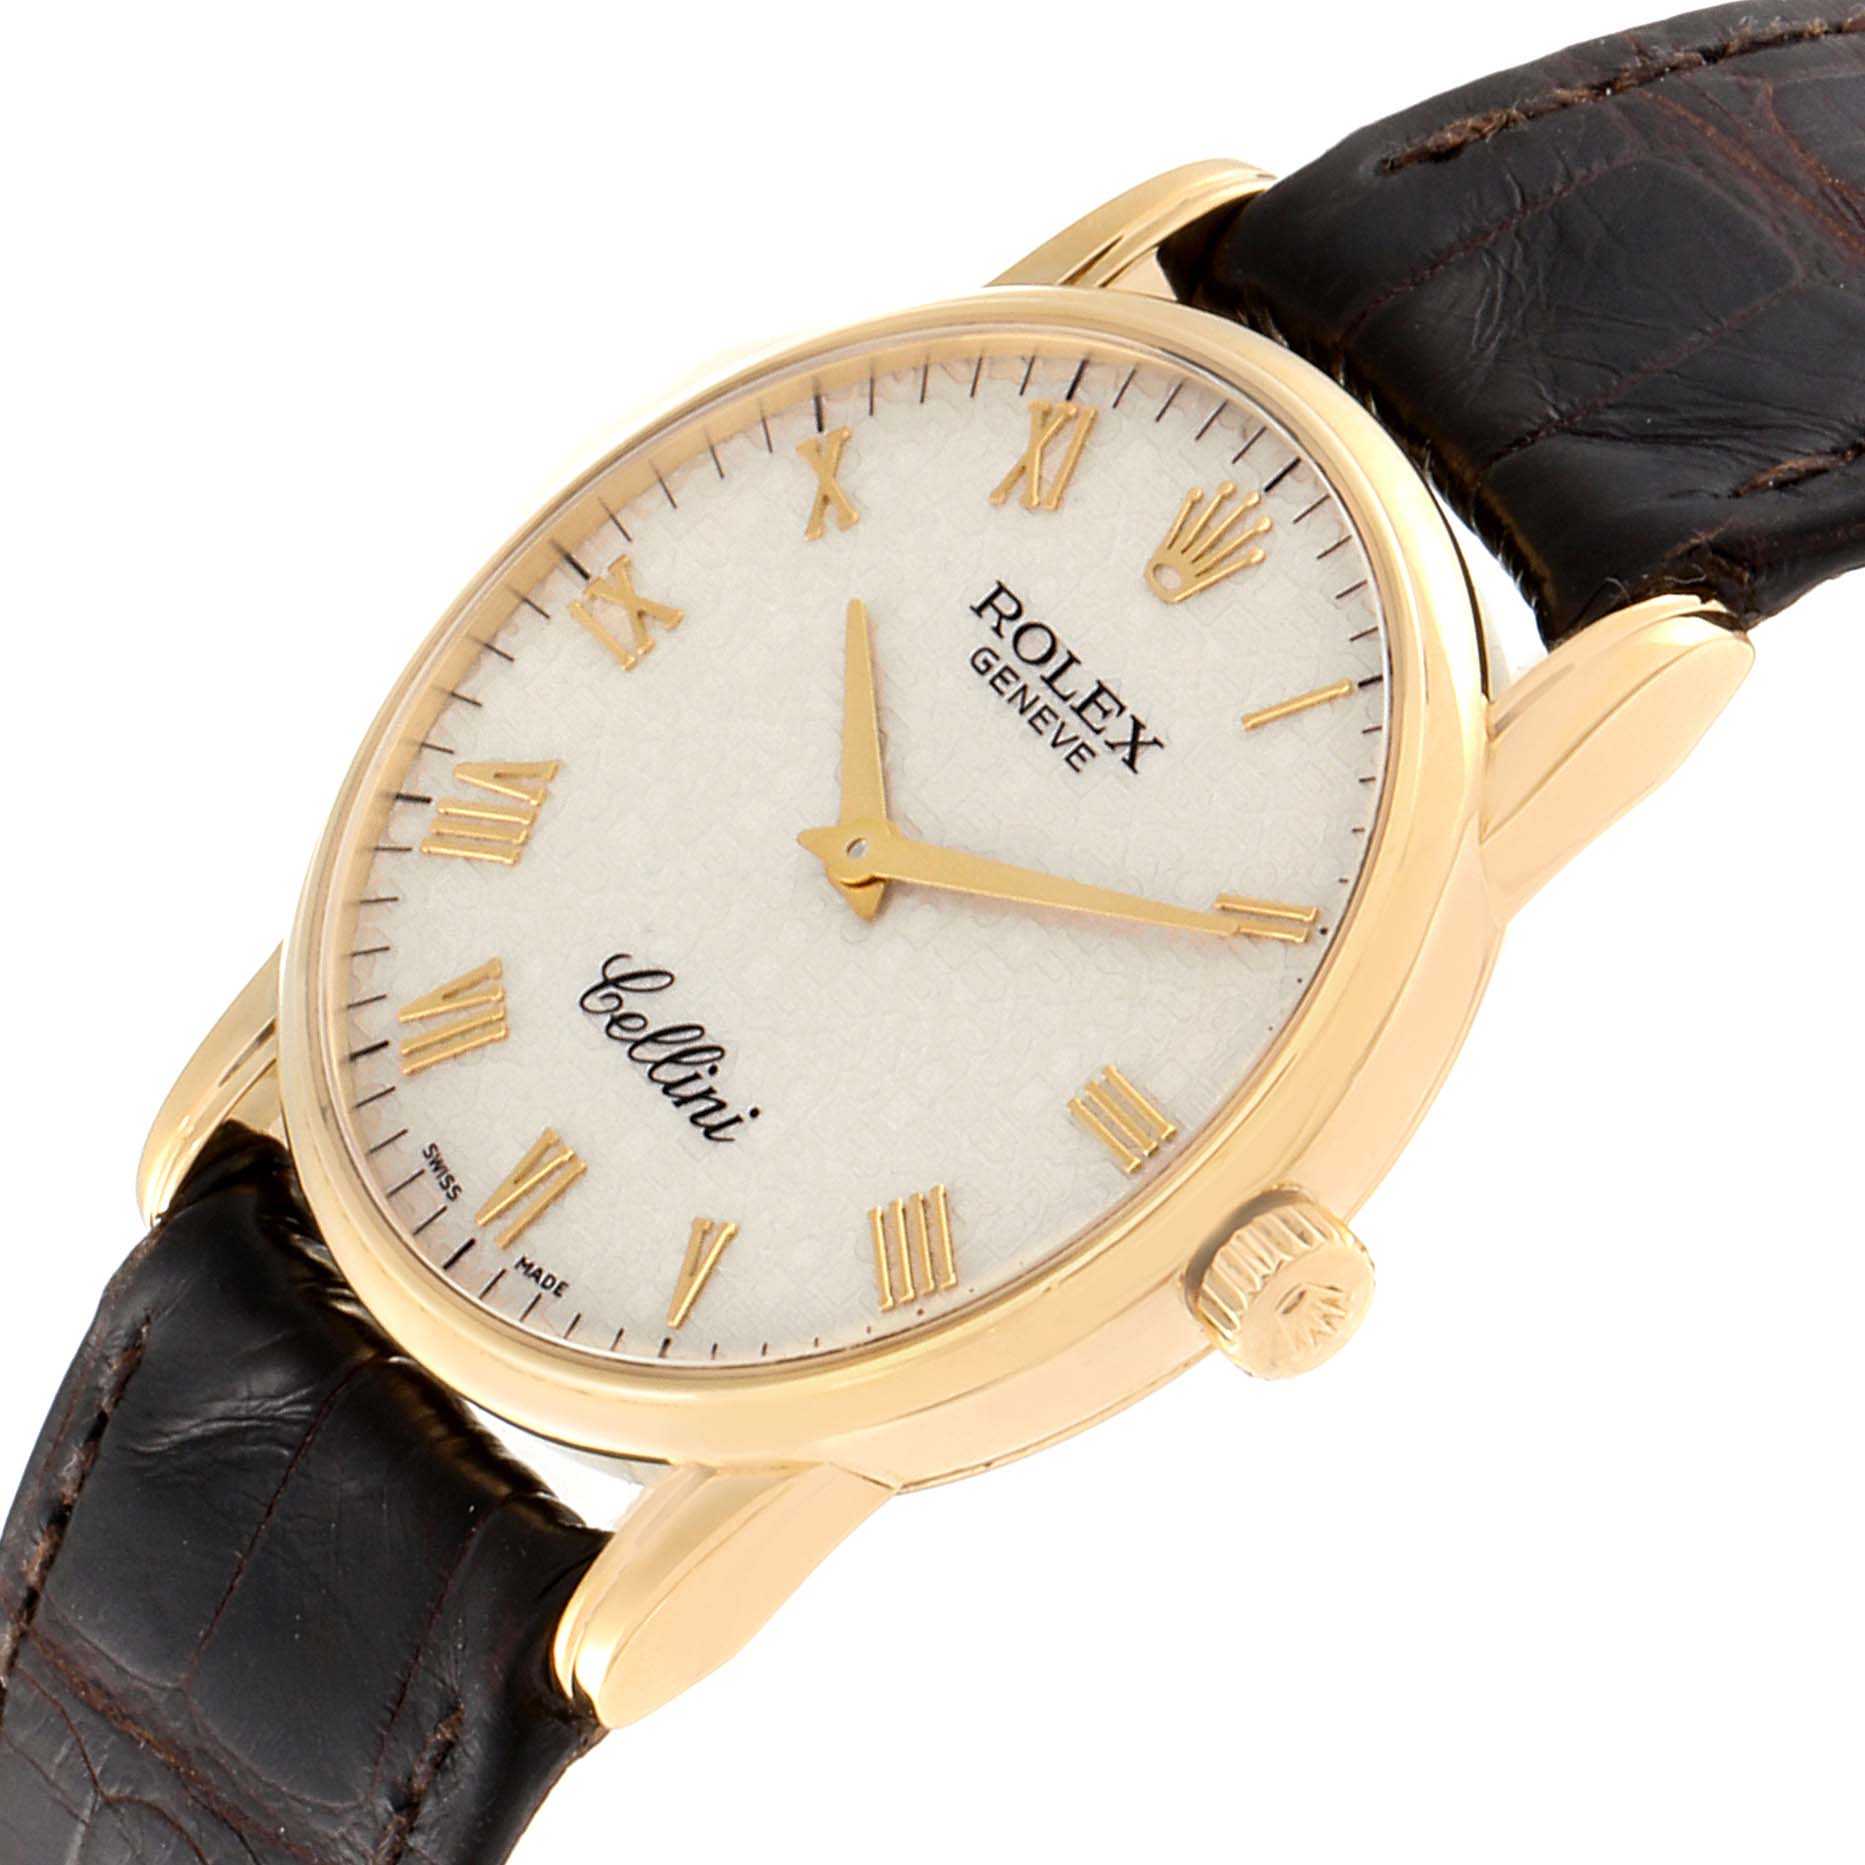 Rolex Cellini Classic Yellow Gold Anniversary Dial Brown Strap Watch 5116 SwissWatchExpo